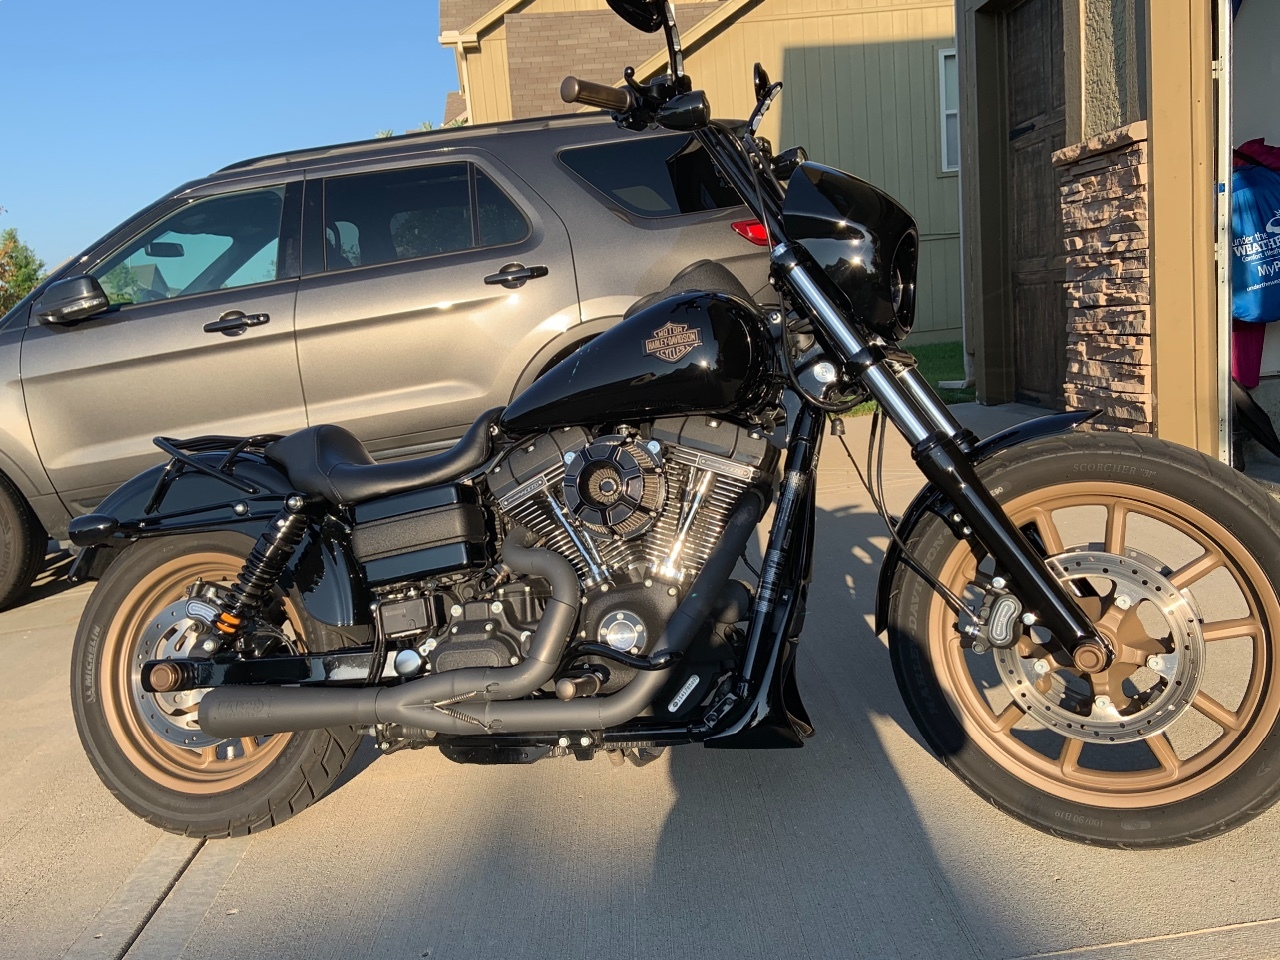 Low Rider S For Sale - Harley-Davidson Motorcycles - Cycle